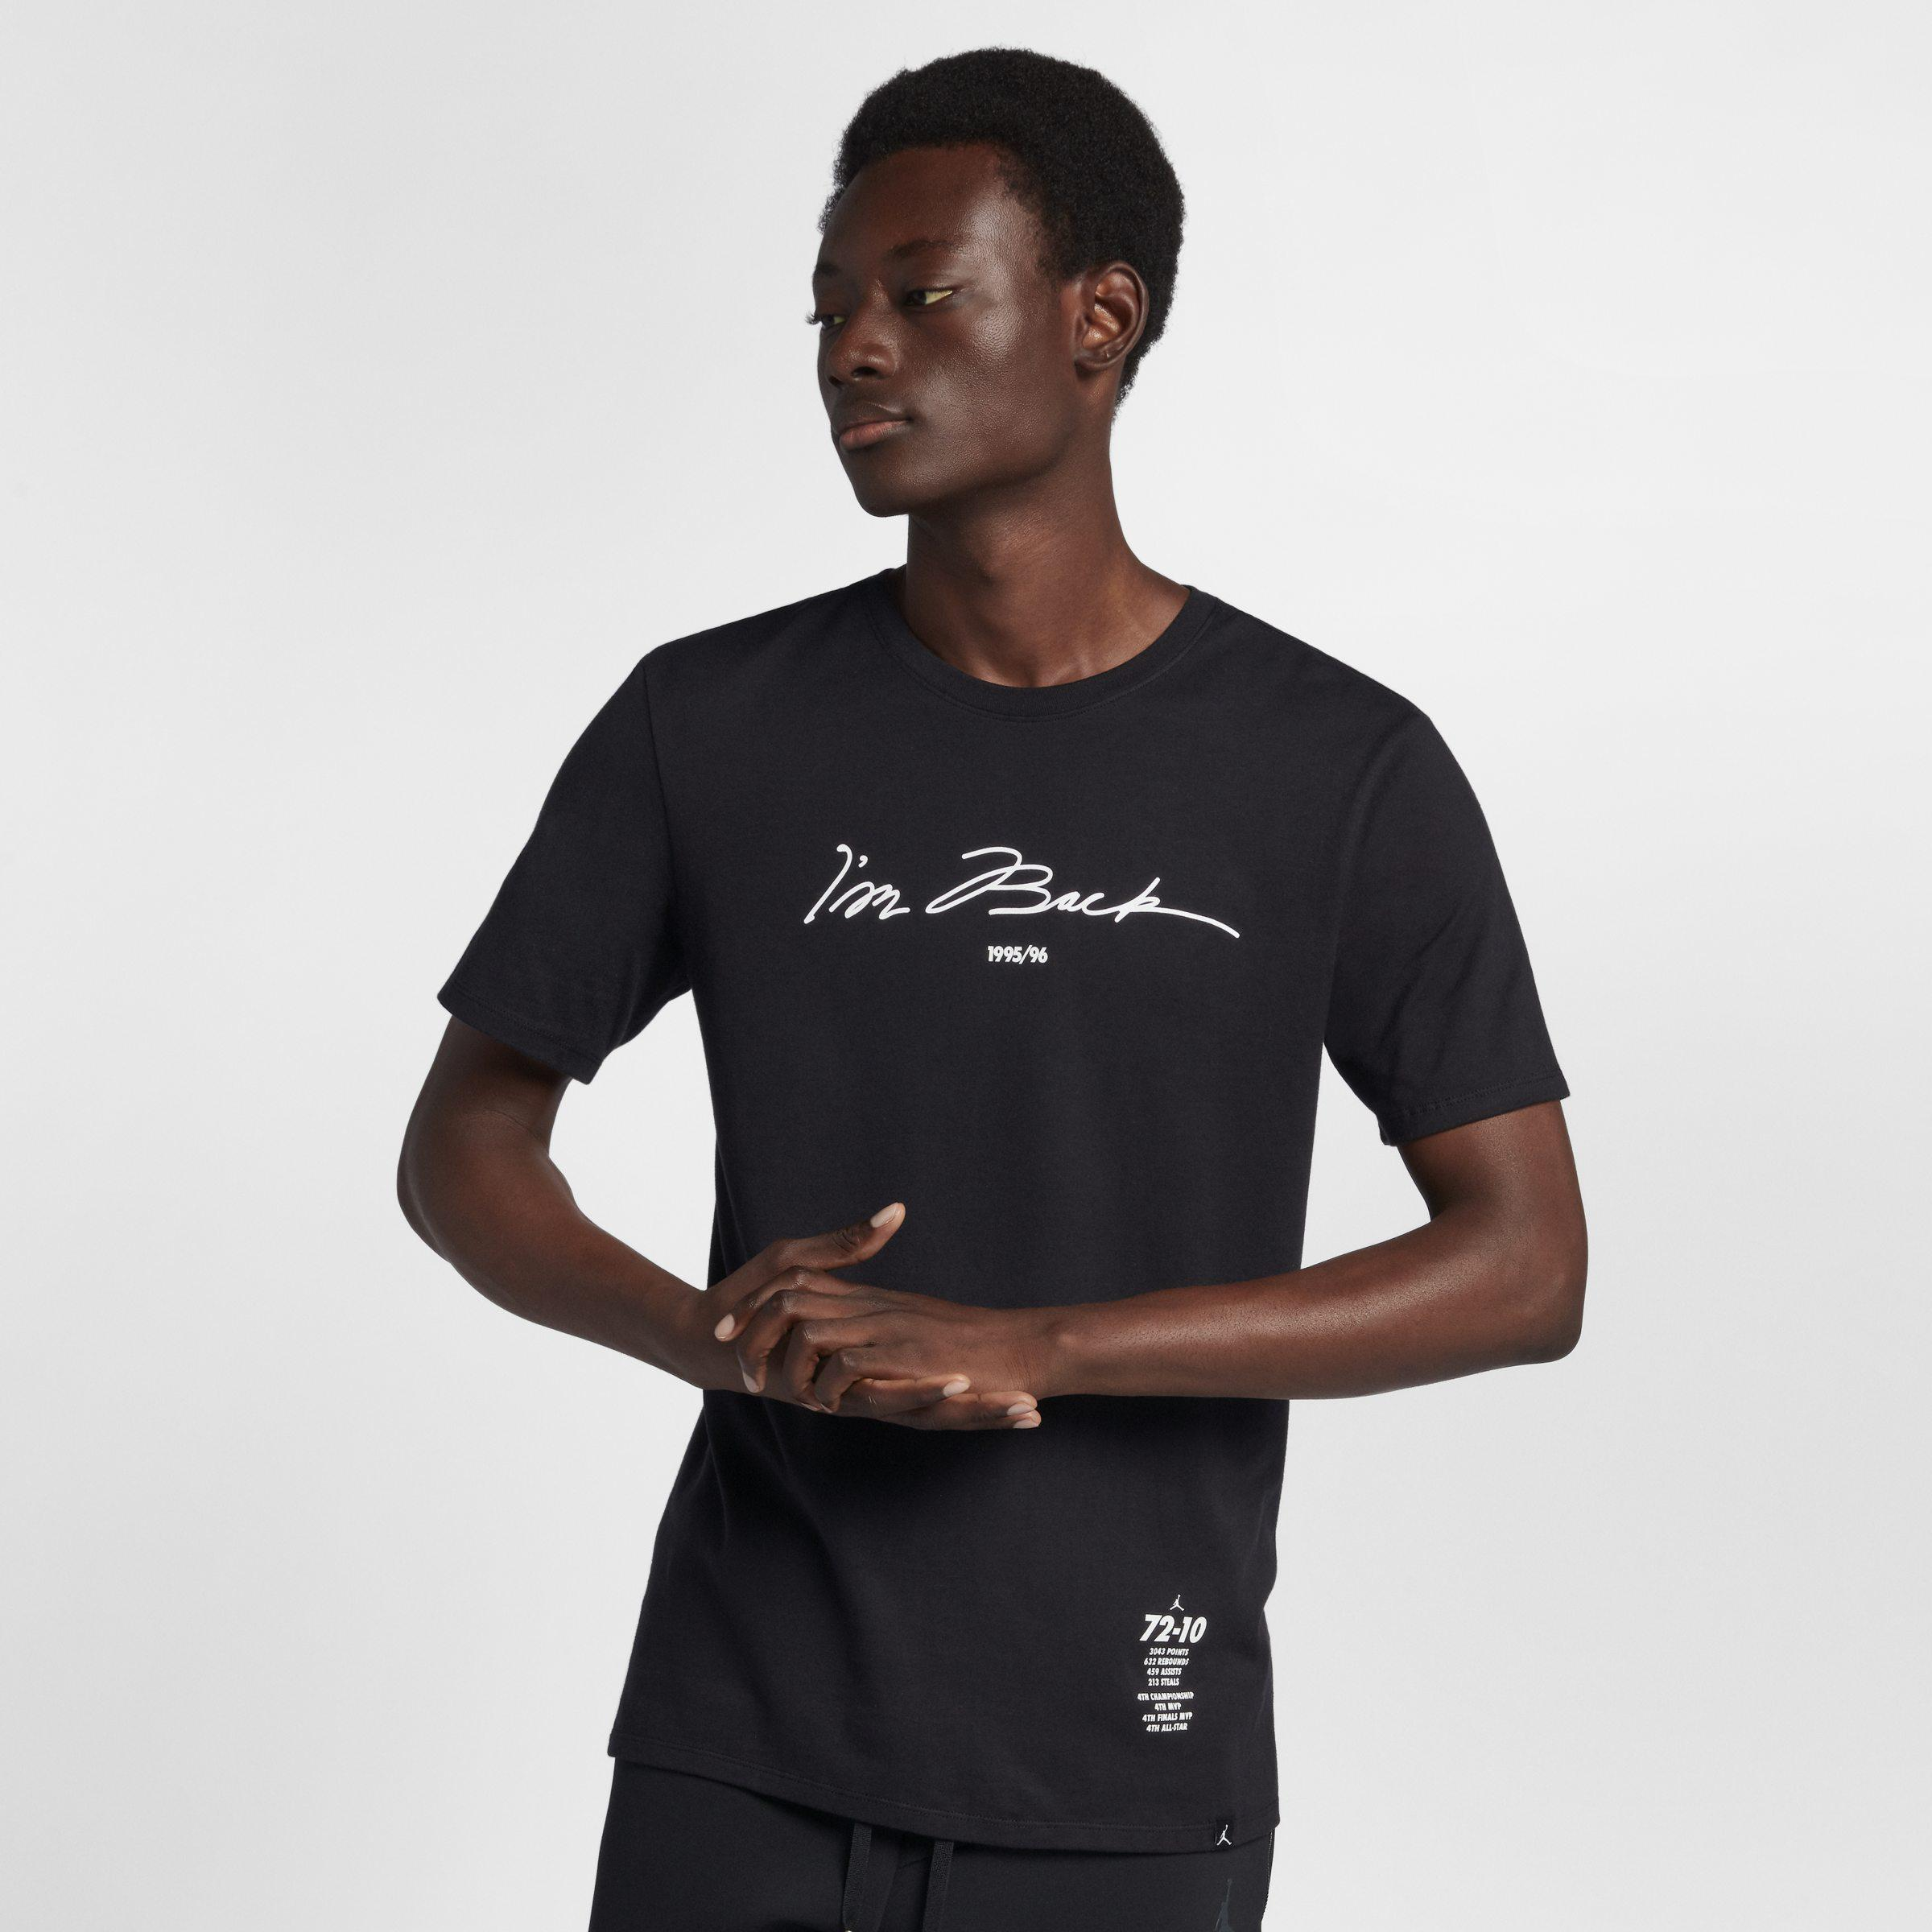 detailed look 62740 09b3b Nike Cotton Jordan Sportswear Legacy Aj 11 T-shirt in Black ...